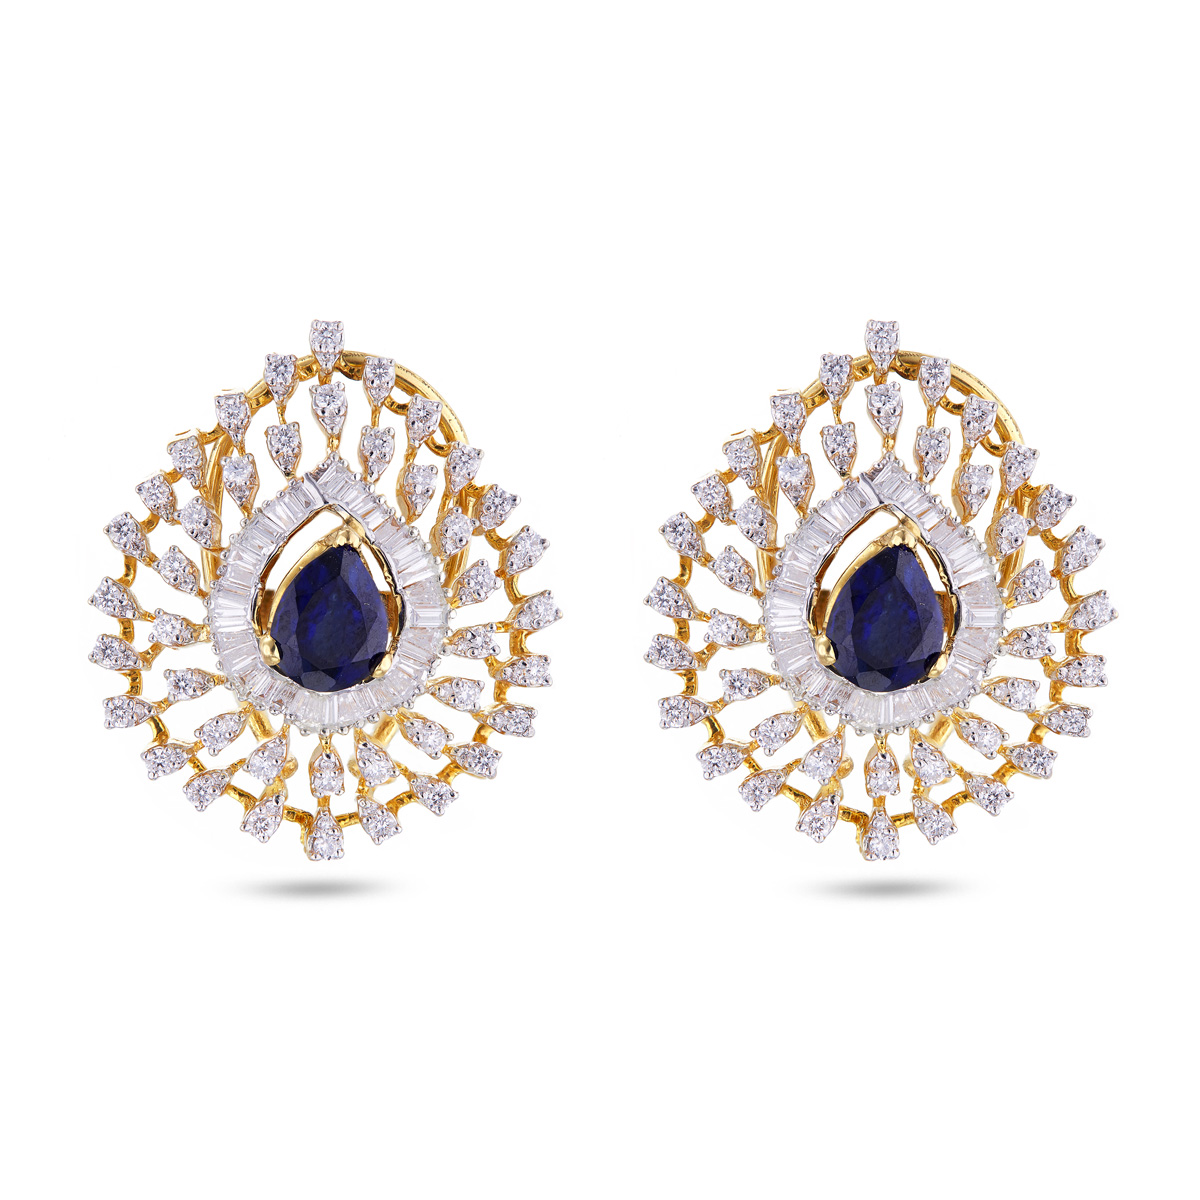 The Supreme Stylite Stud Earrings